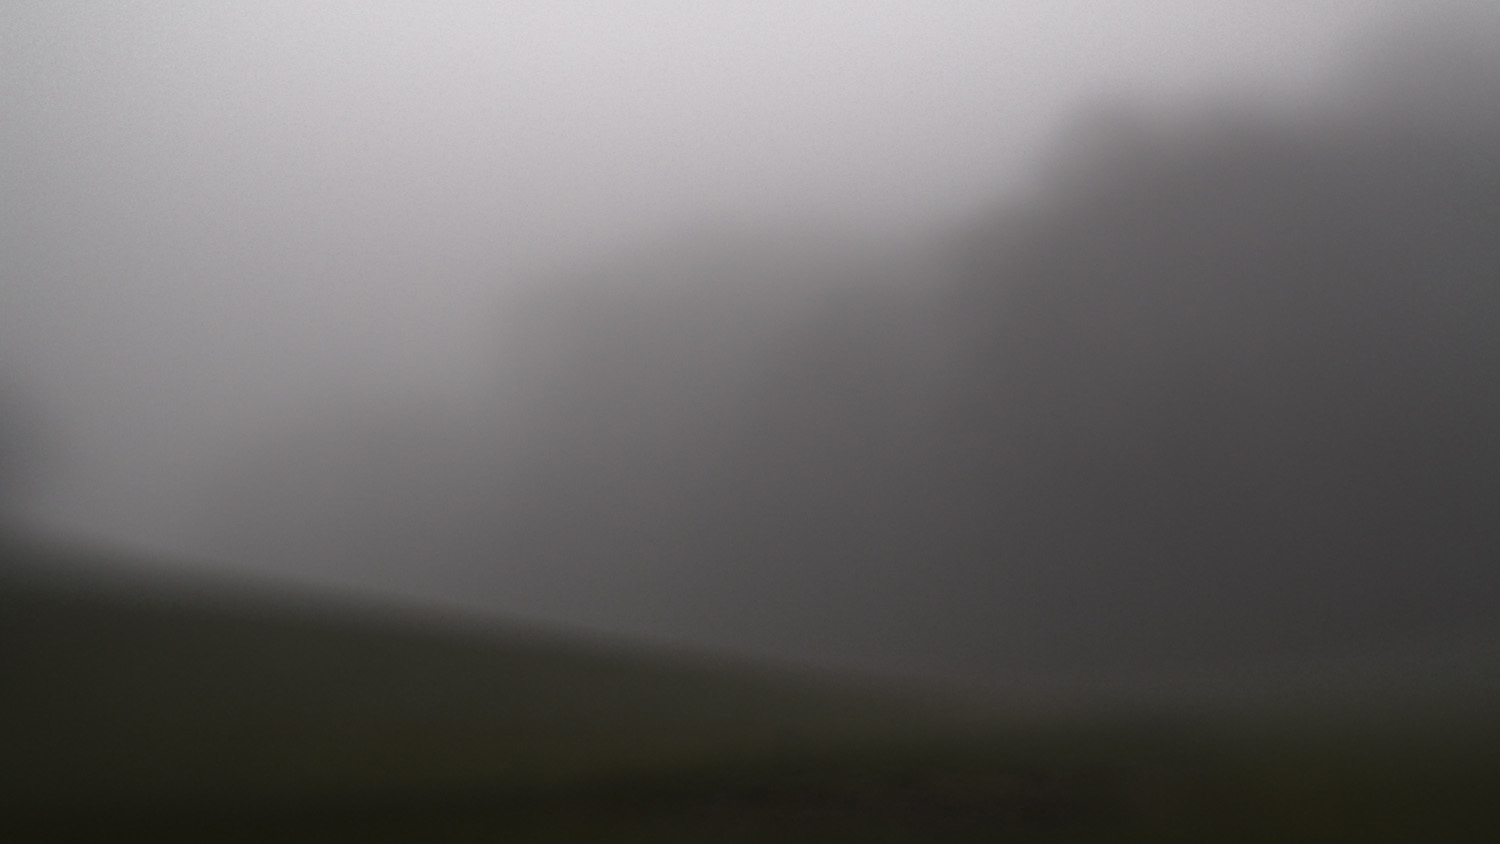 A Foggy Morning in my Home Town7.jpg